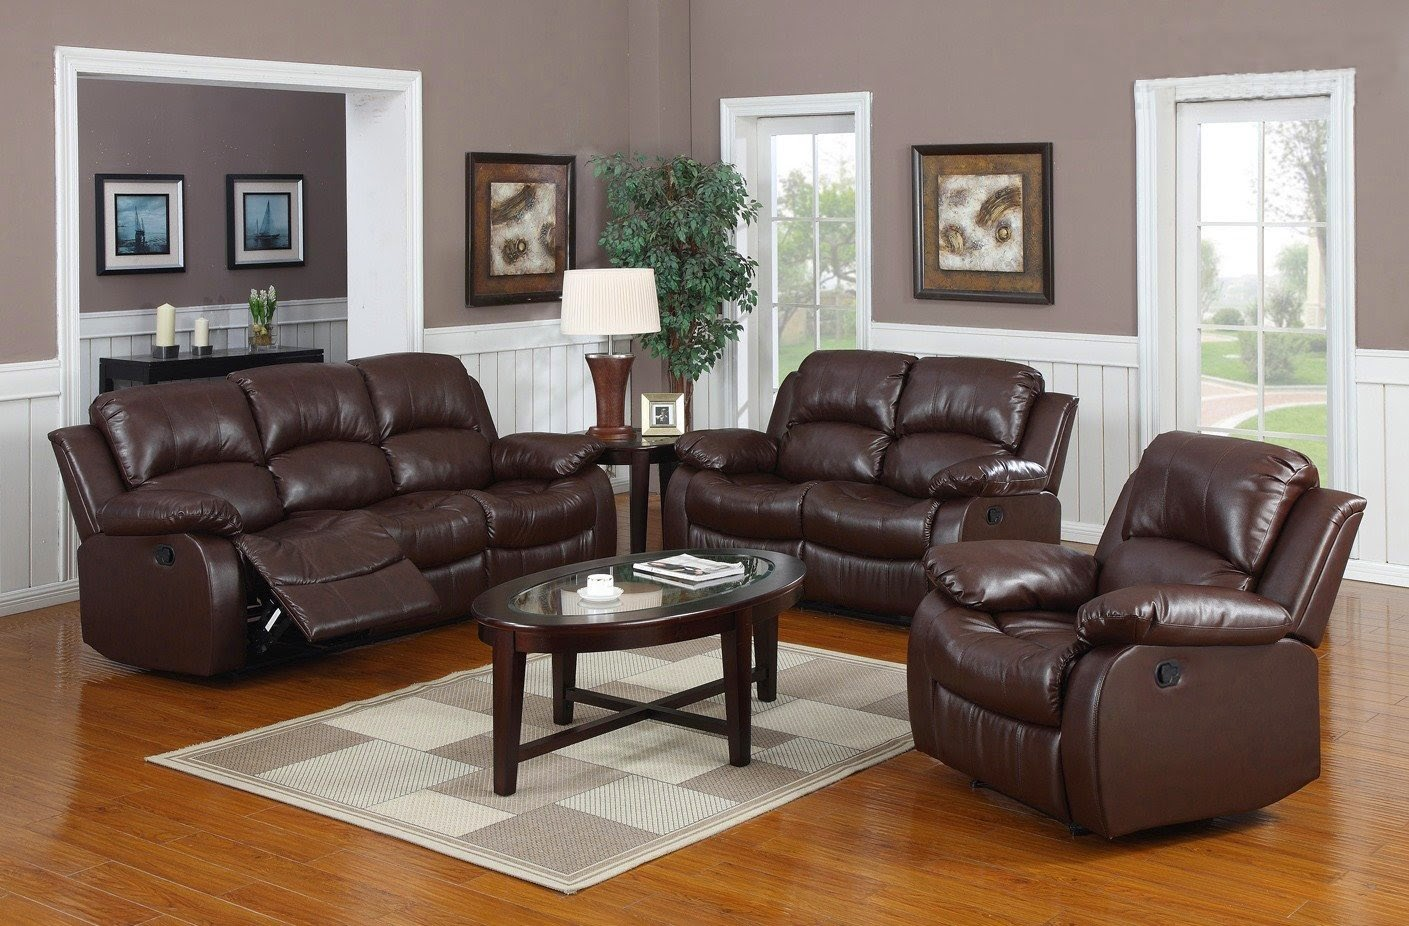 Cheap reclining sofas sale leather reclining sofa costco for Living room chair set